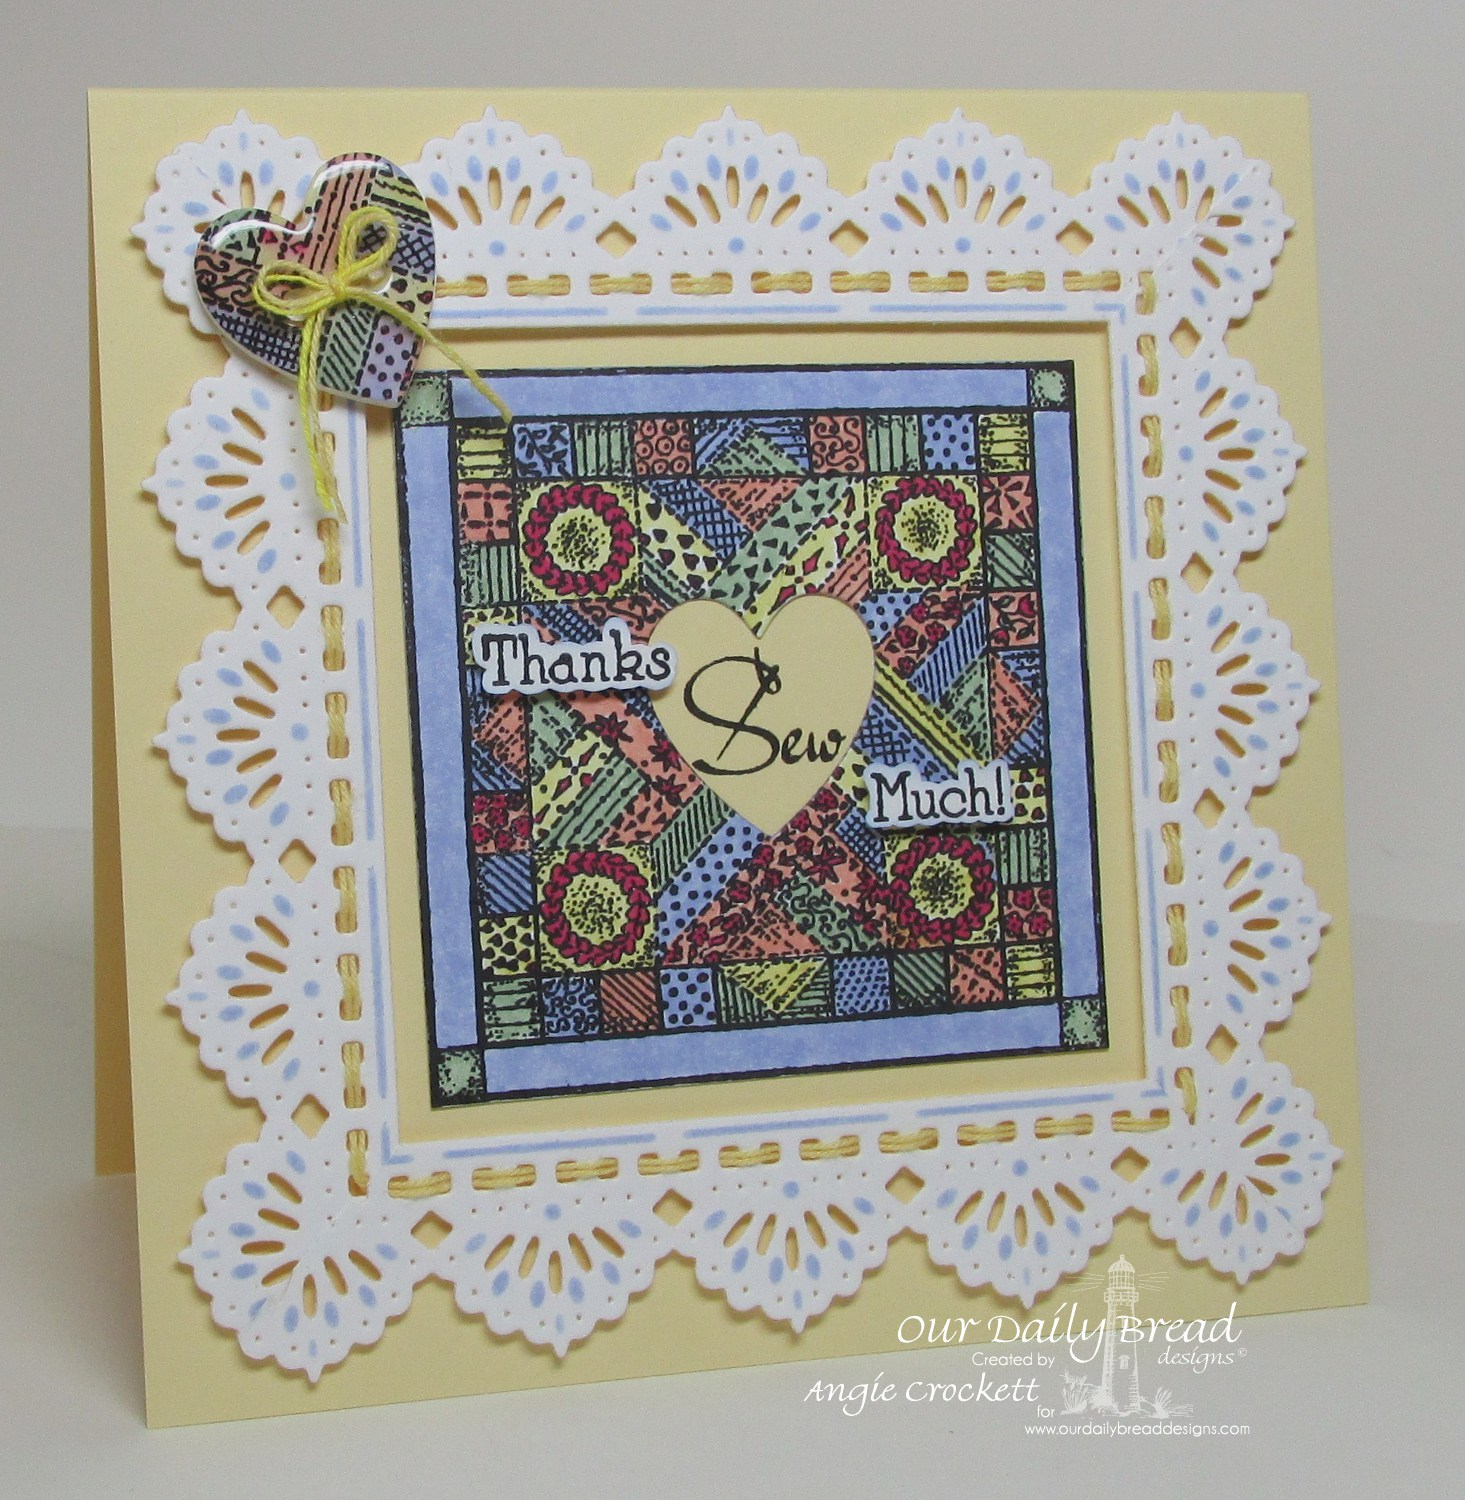 Stamps - Our Daily Bread Designs Quilts, ODBD Custom Beautiful Borders Dies, ODBD Custom Ornate Hearts Dies